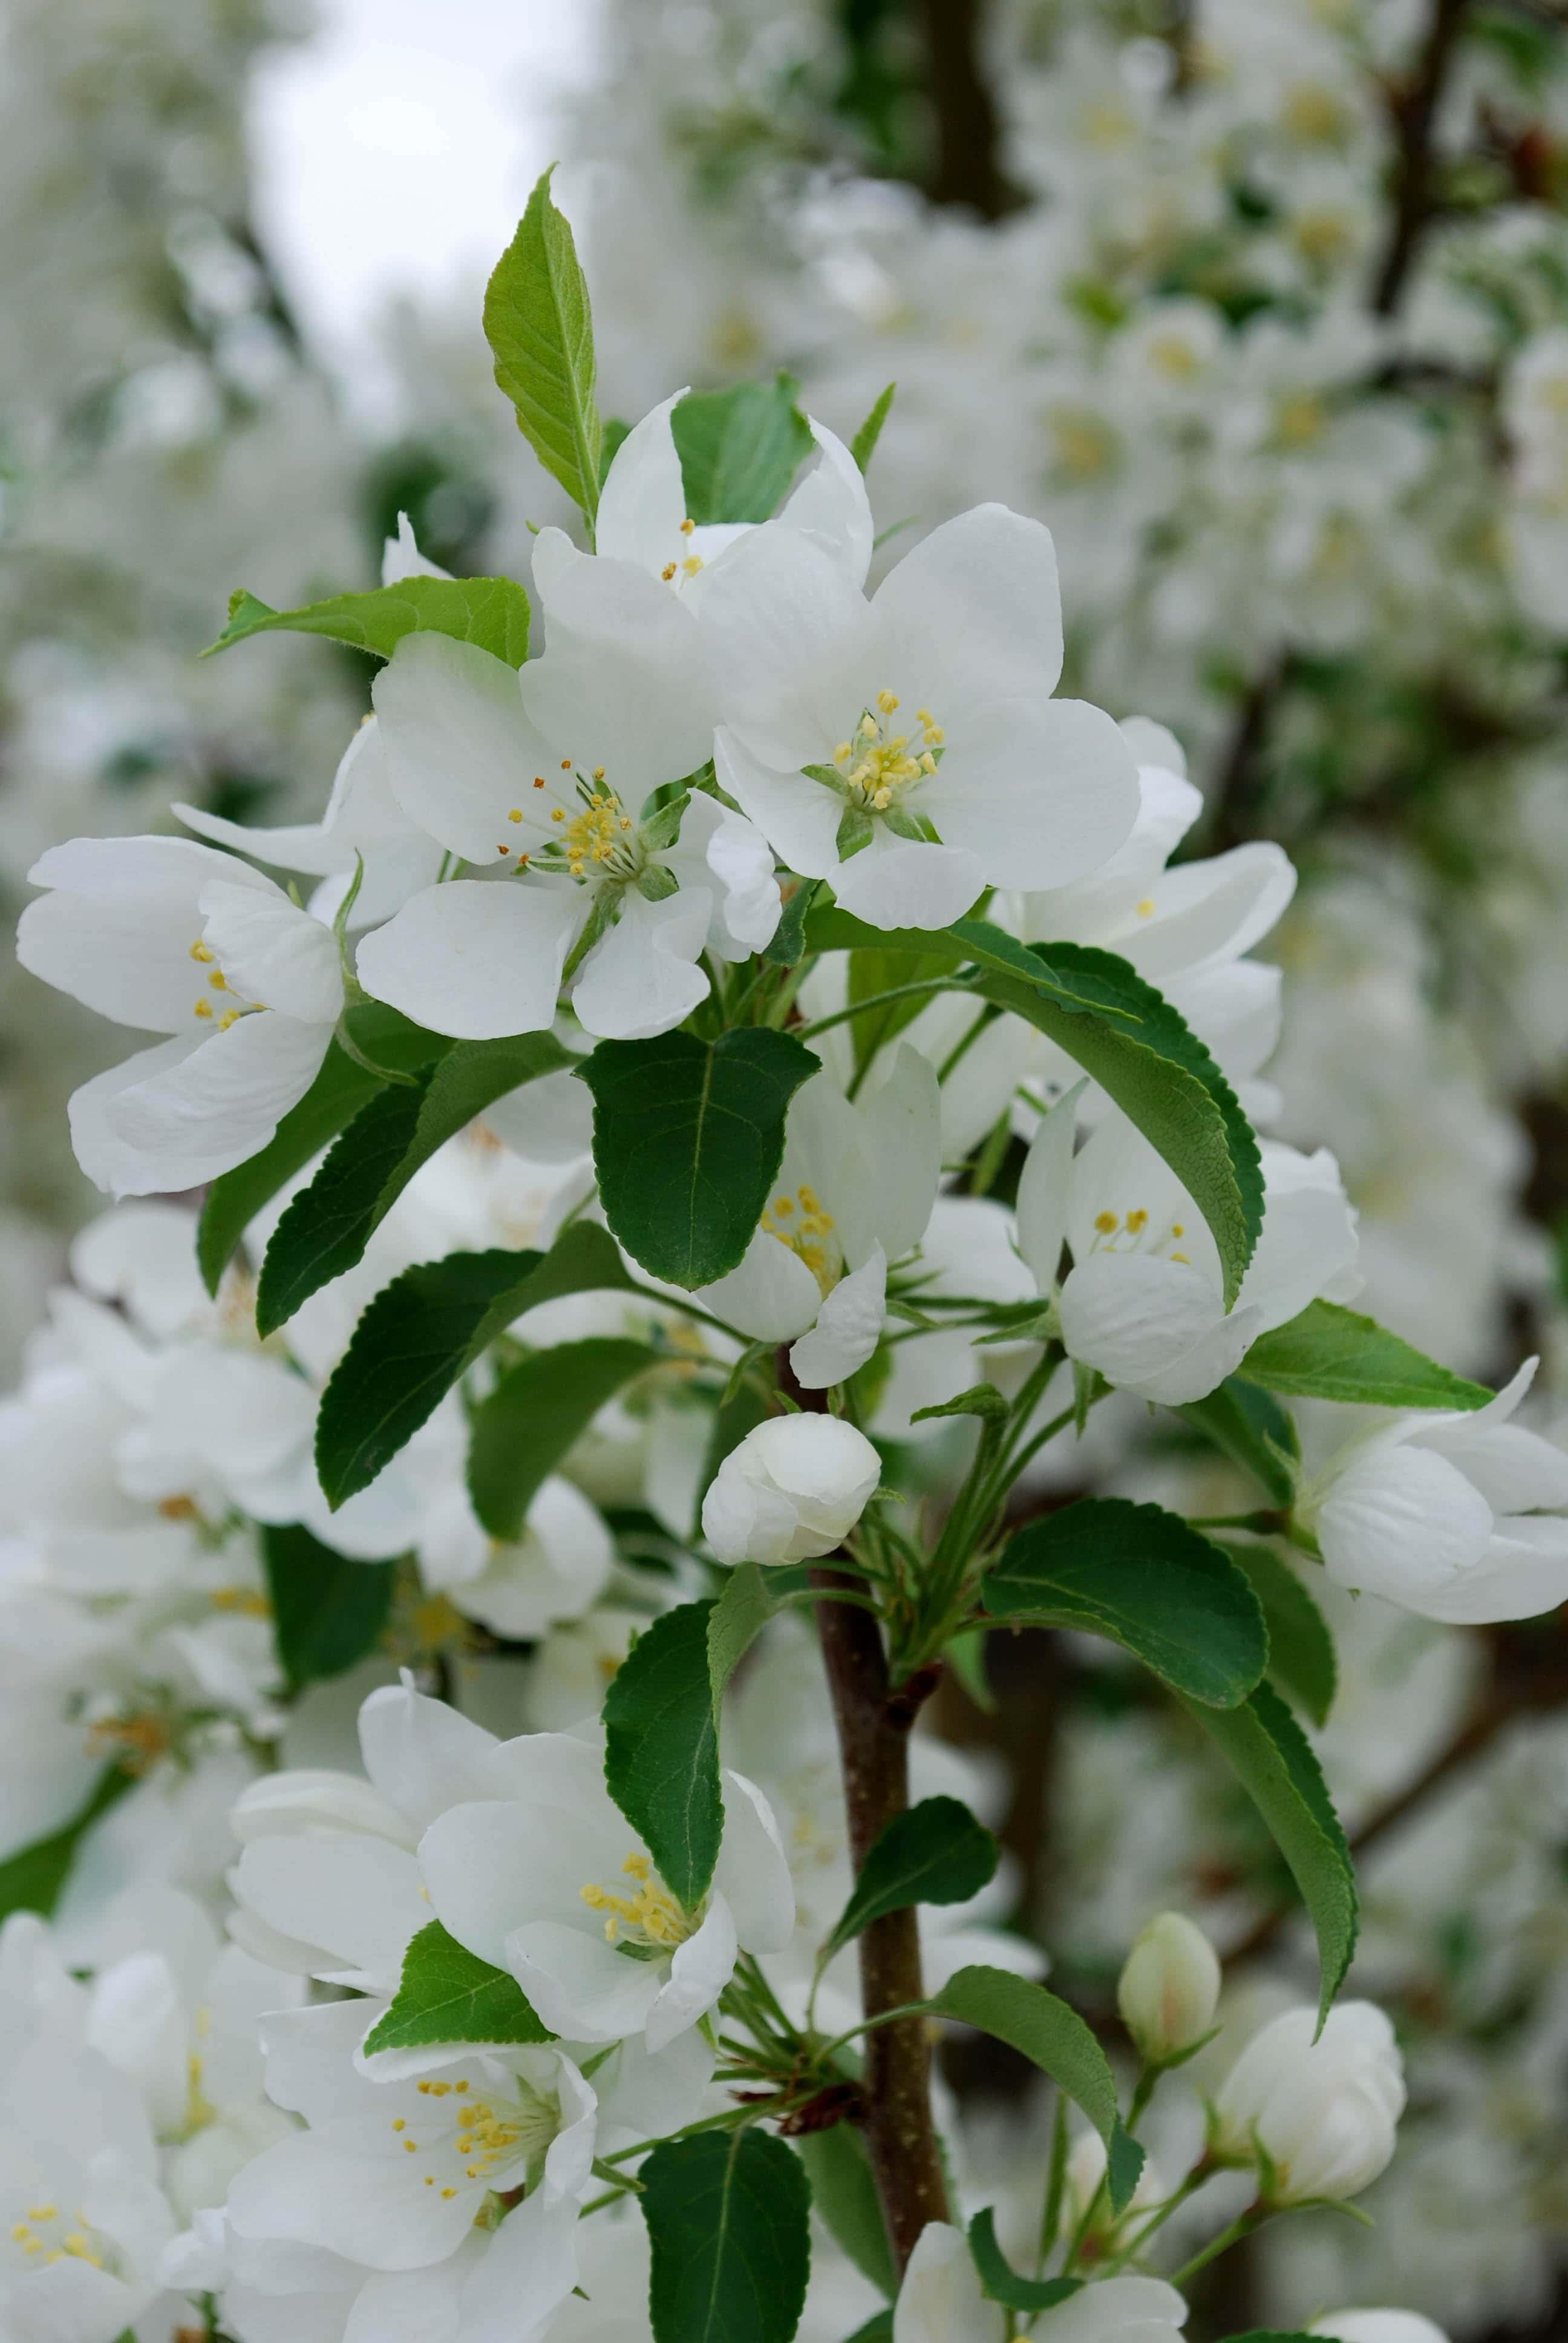 Spring Snow Crabapple Flower Close Up